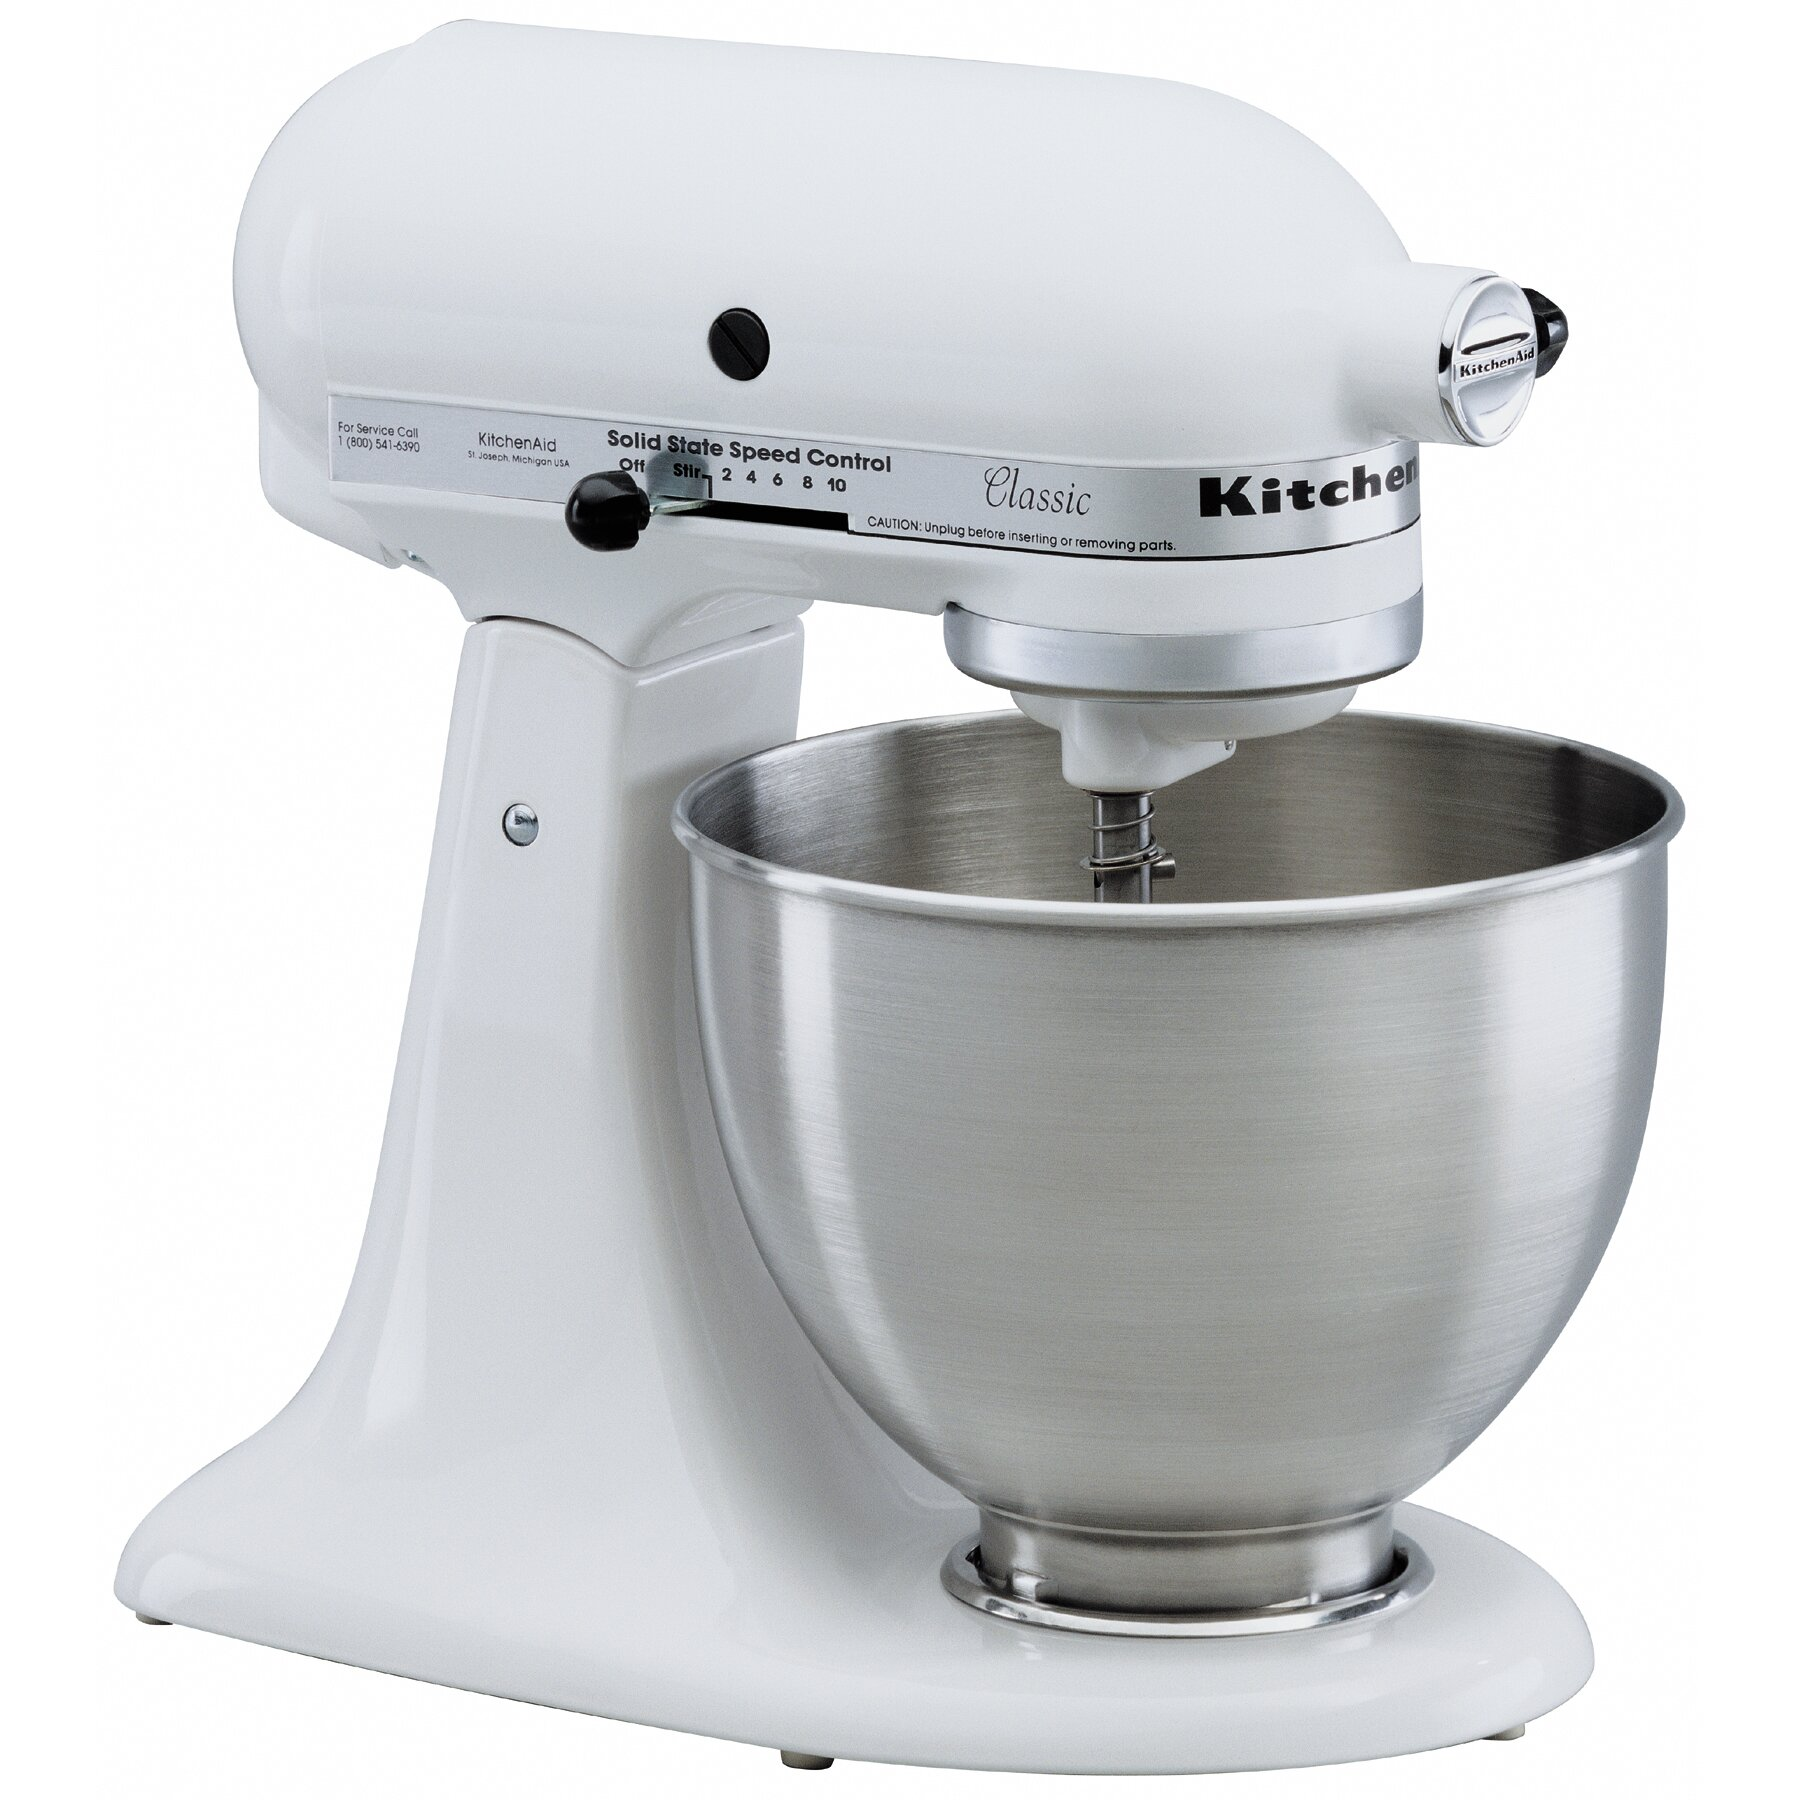 Kitchen Mixers For Sale: KitchenAid Classic Series 4.5 Qt. Stand Mixer & Reviews